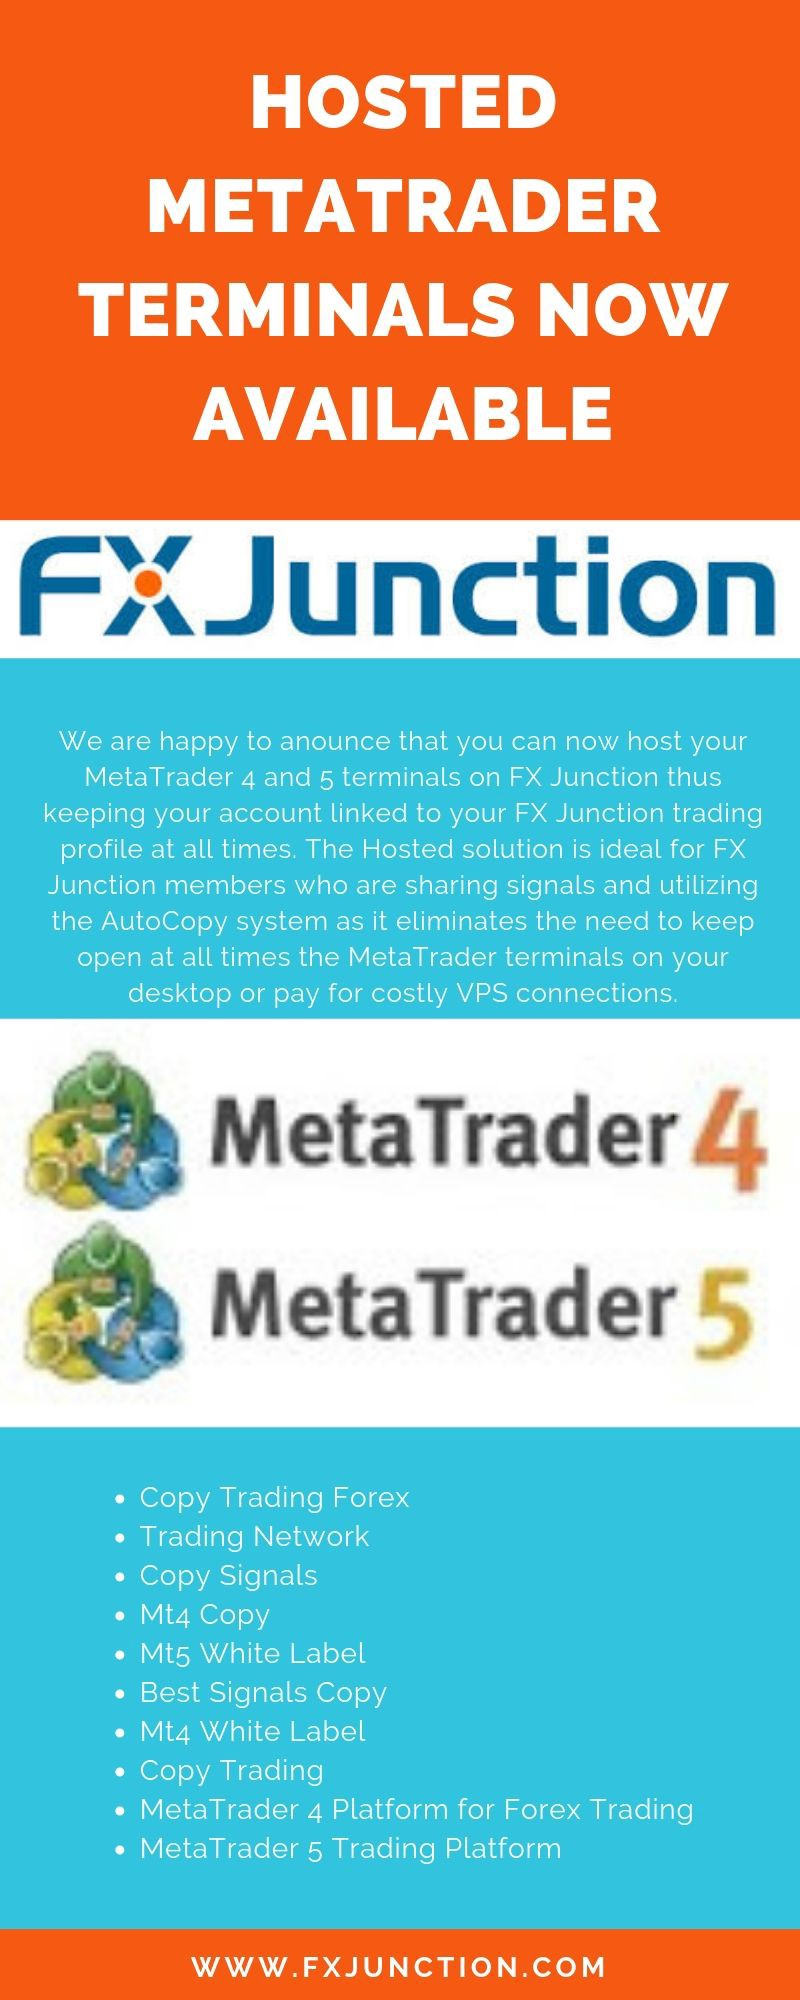 Hosted MetaTrader Terminals Now Available - Fx Junction - Medium